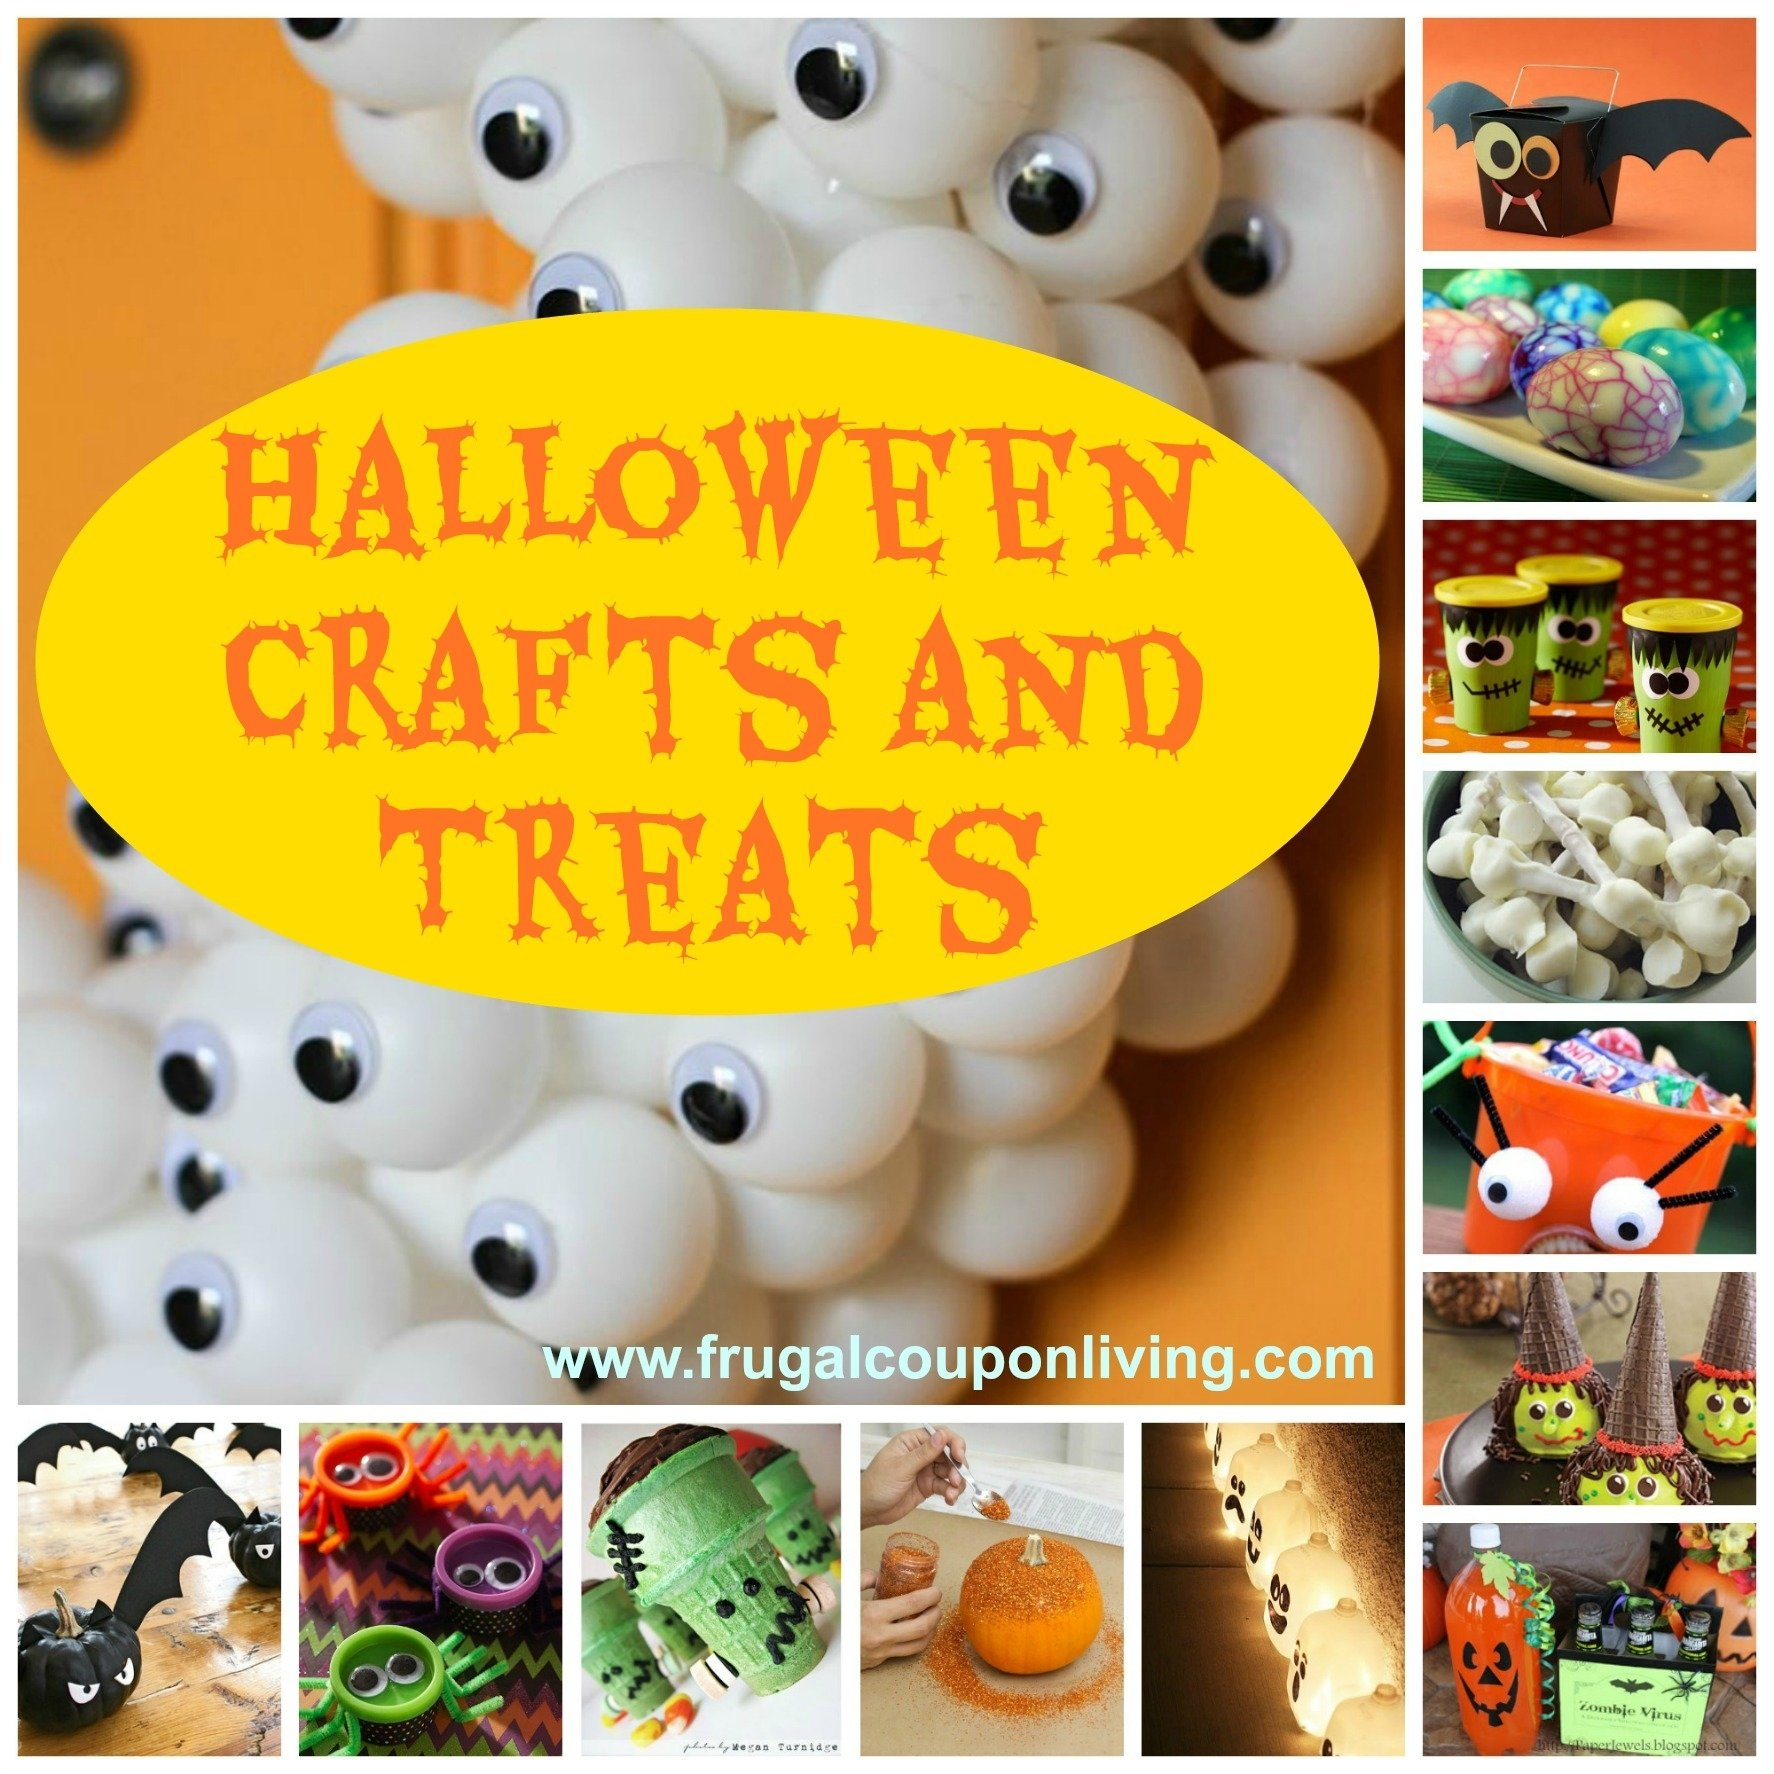 10 Wonderful Fun Halloween Ideas For Kids halloween craft treat ideas fun for the kids and adults pin now 2020